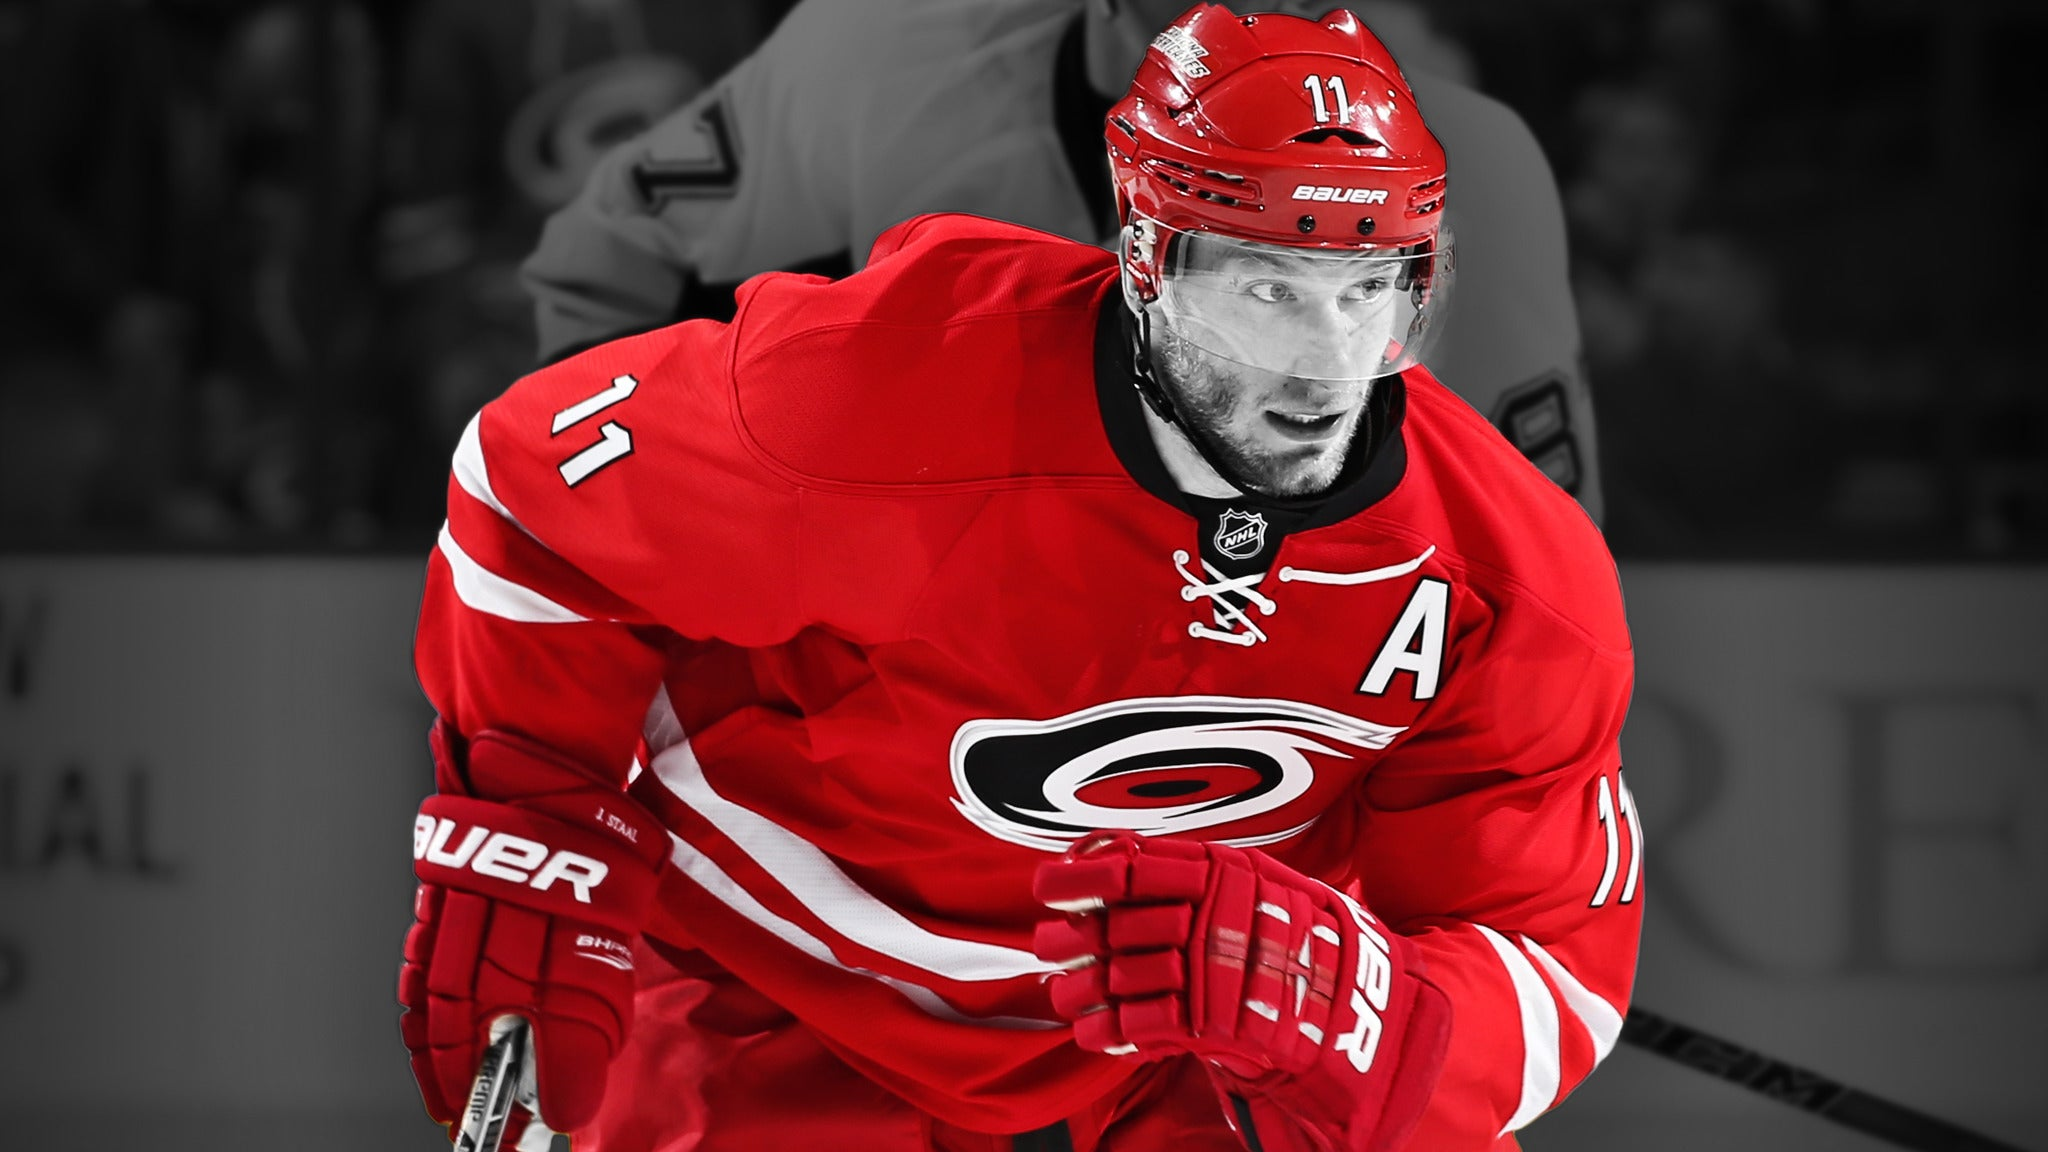 Carolina Hurricanes vs. Tampa Bay Lightning at PNC Arena